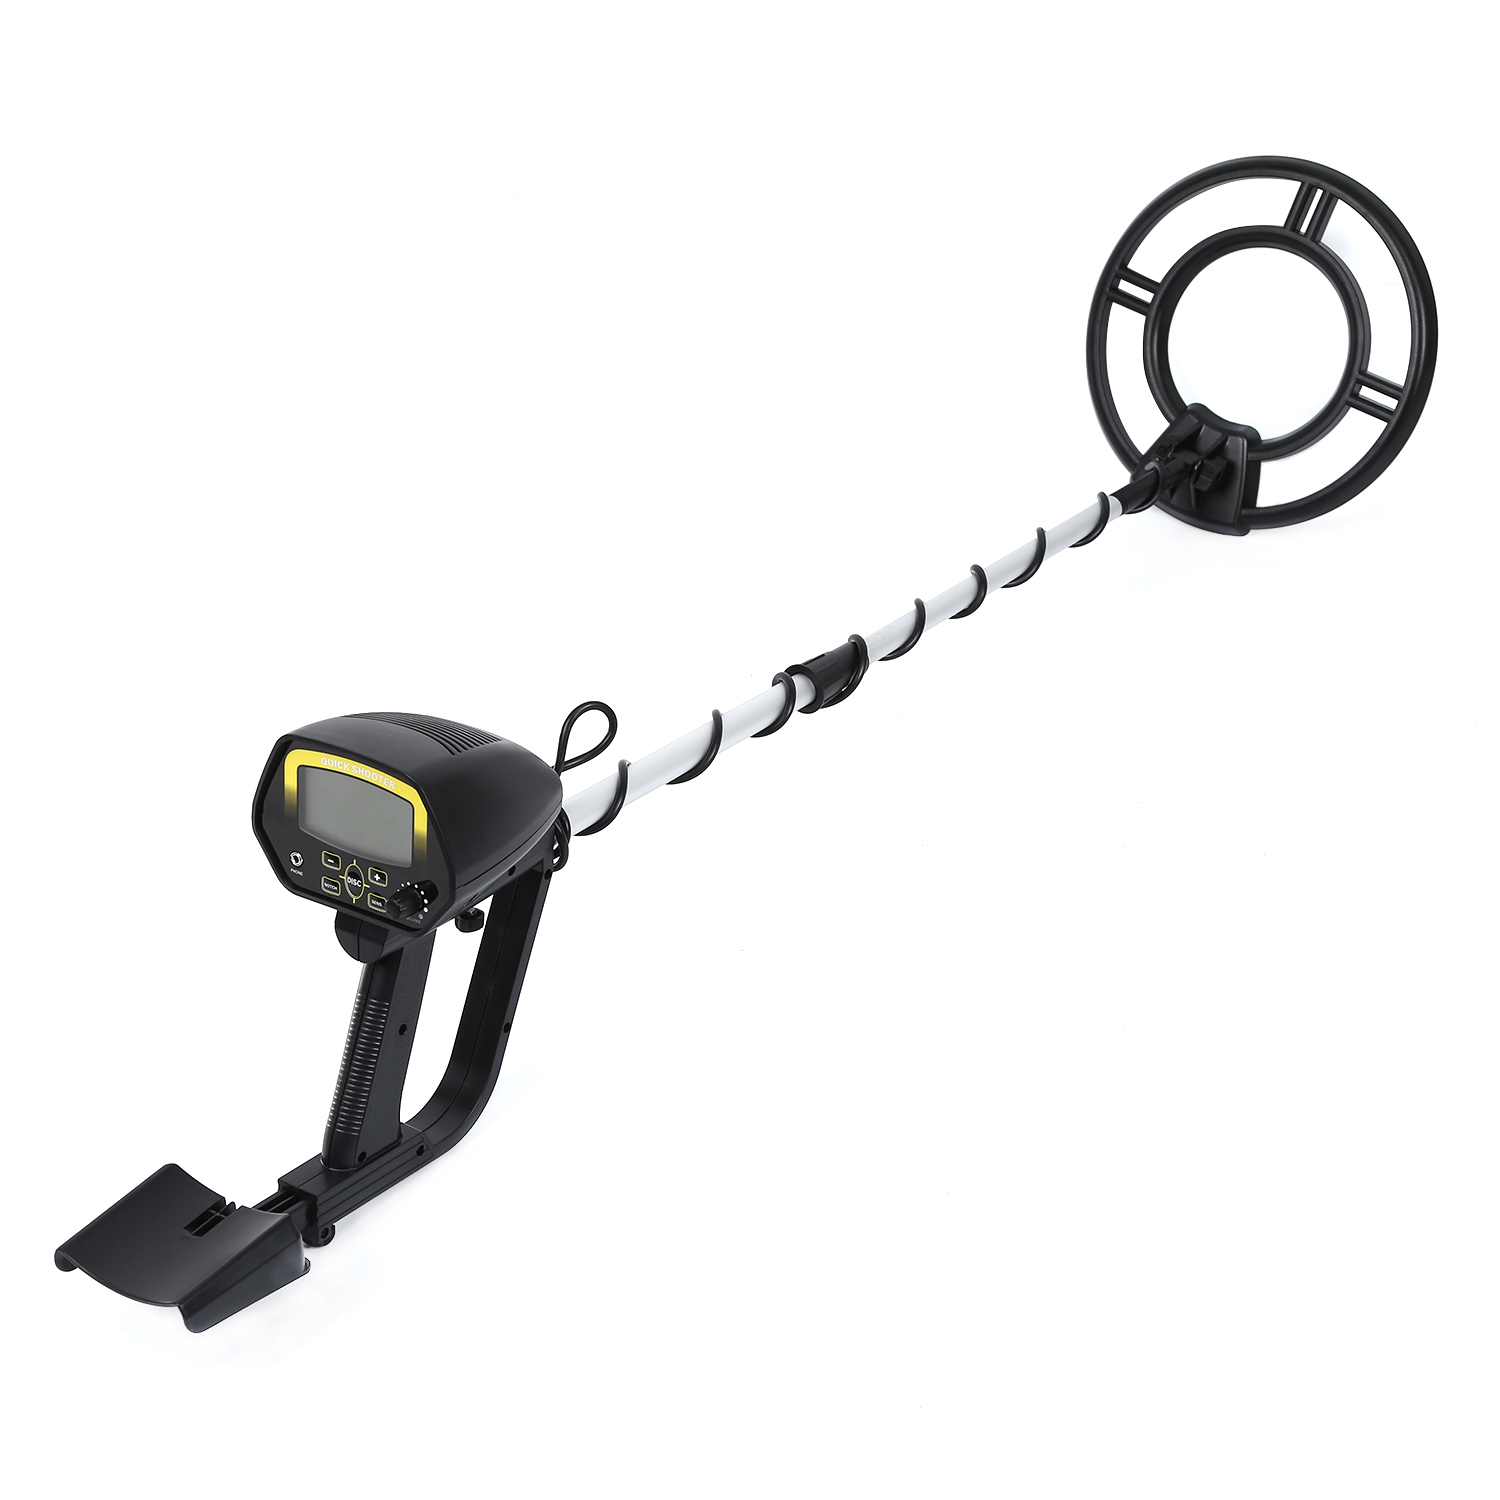 Cheapest Underground Metal Detector MD4060 Waterproof Jewelry Treasure Hunting Gold Digger Hunter Adjustable Metal FinderCheapest Underground Metal Detector MD4060 Waterproof Jewelry Treasure Hunting Gold Digger Hunter Adjustable Metal Finder